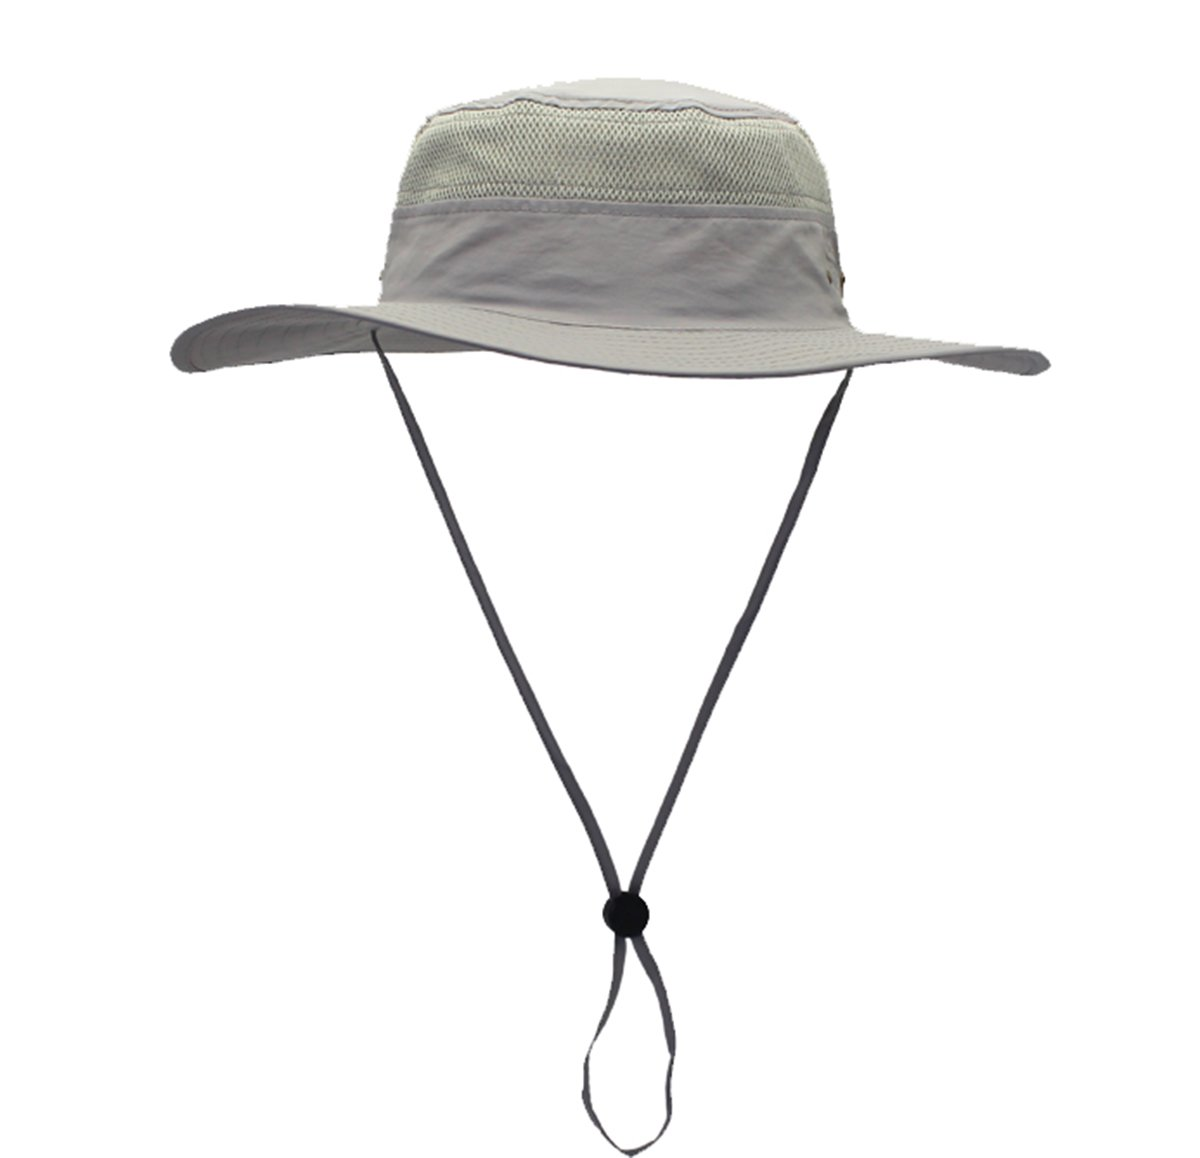 GG ST Outdoor UPF 50+ Mesh Sun Protection Hat Wide Brim Summer Cap Breathable Packable Hunting Fishing Beach Hat for Men & Women